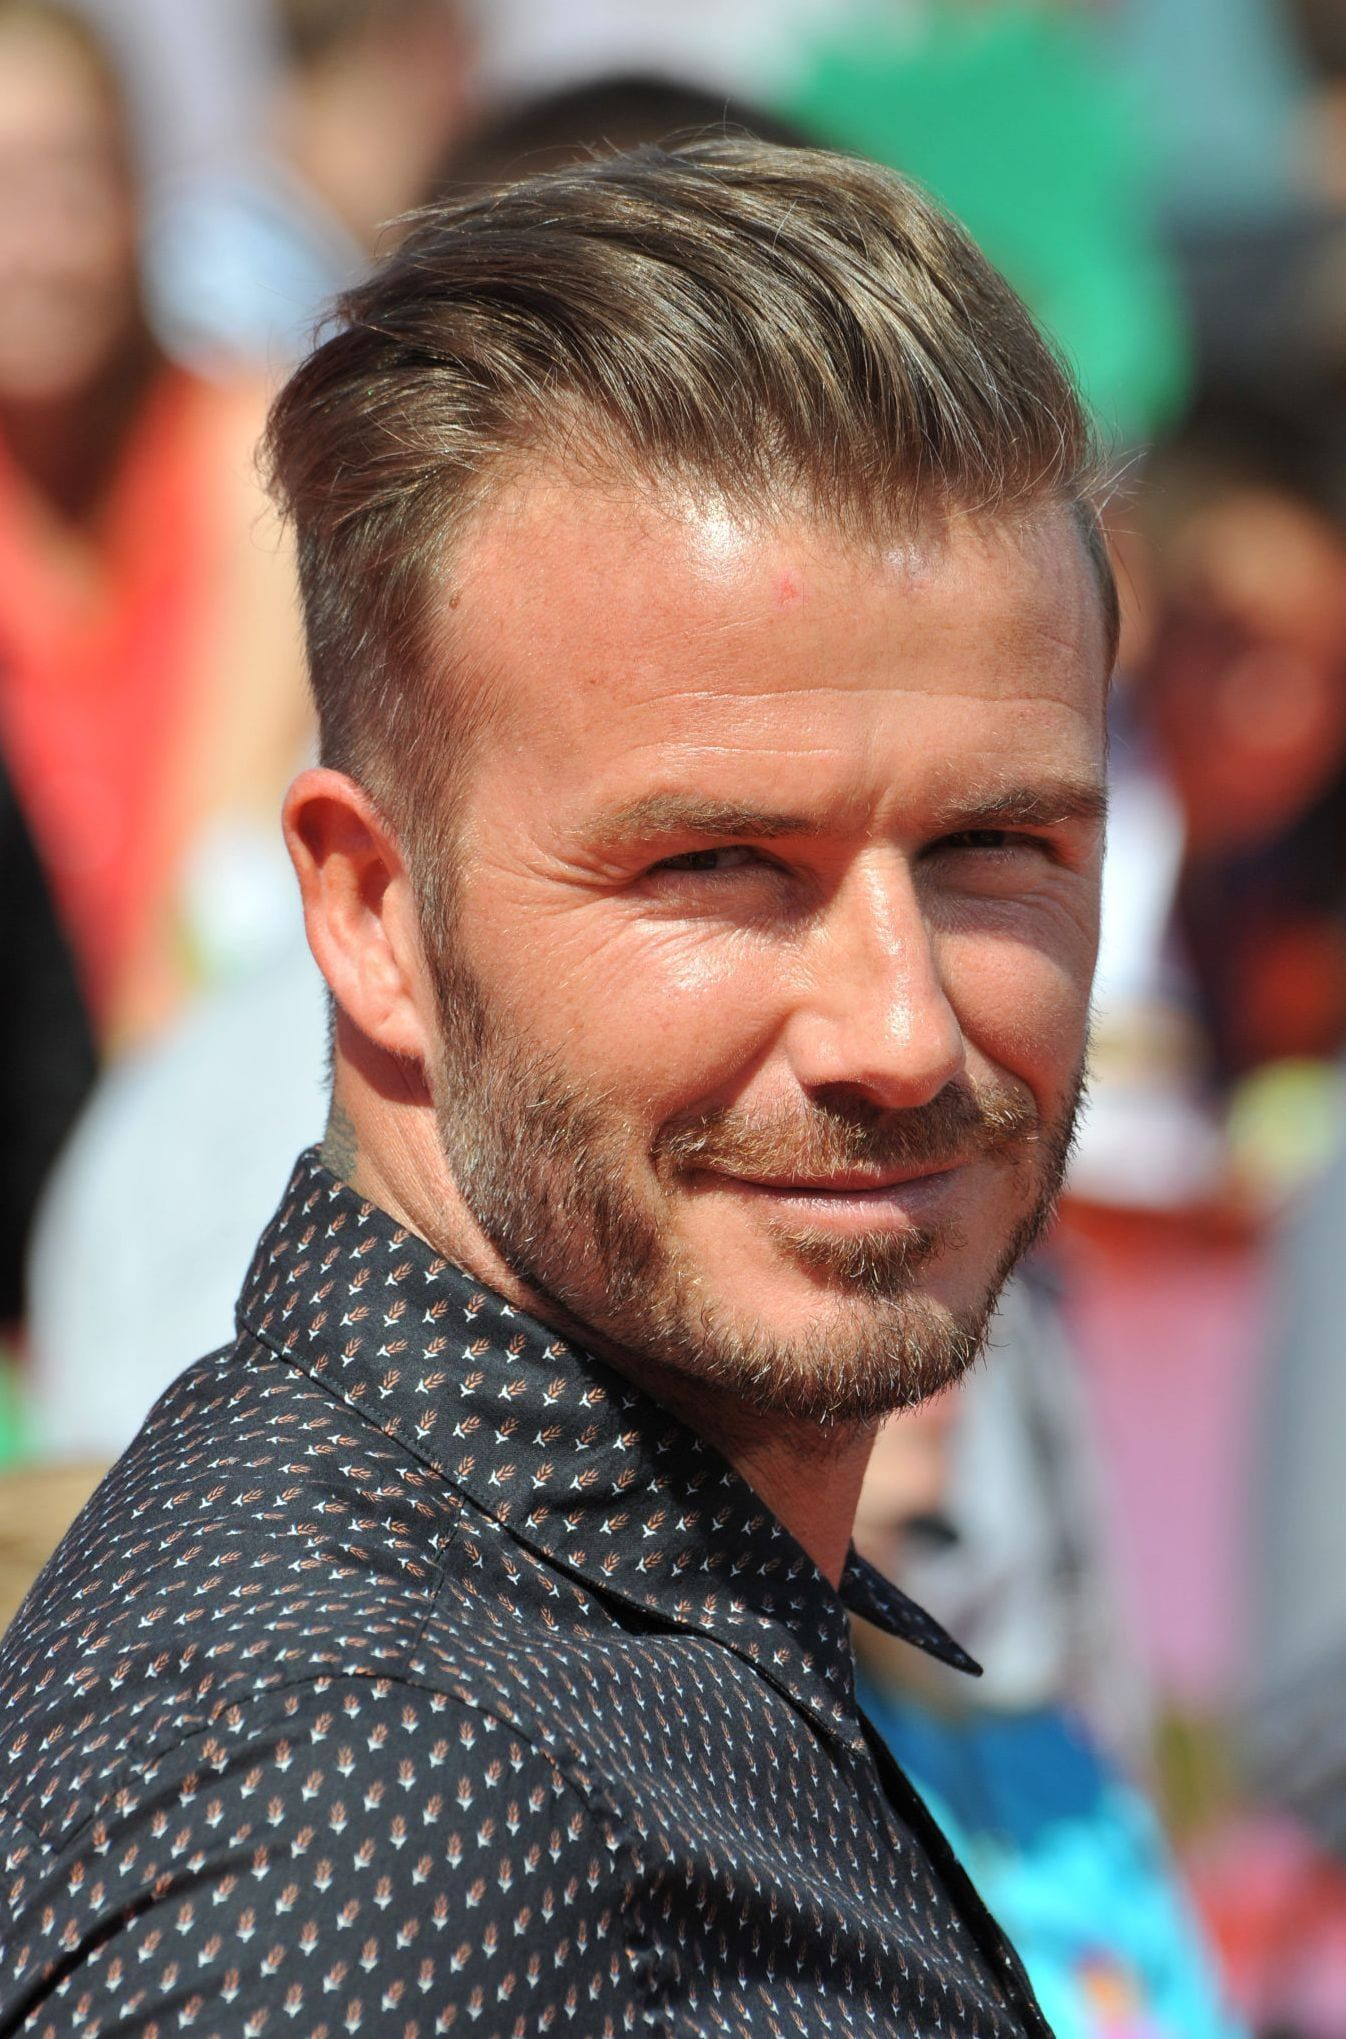 20 Best Hairstyles For A Receding Hairline Extended Hairstyles For Receding Hairline Mens Hairstyles Undercut Fury Haircut